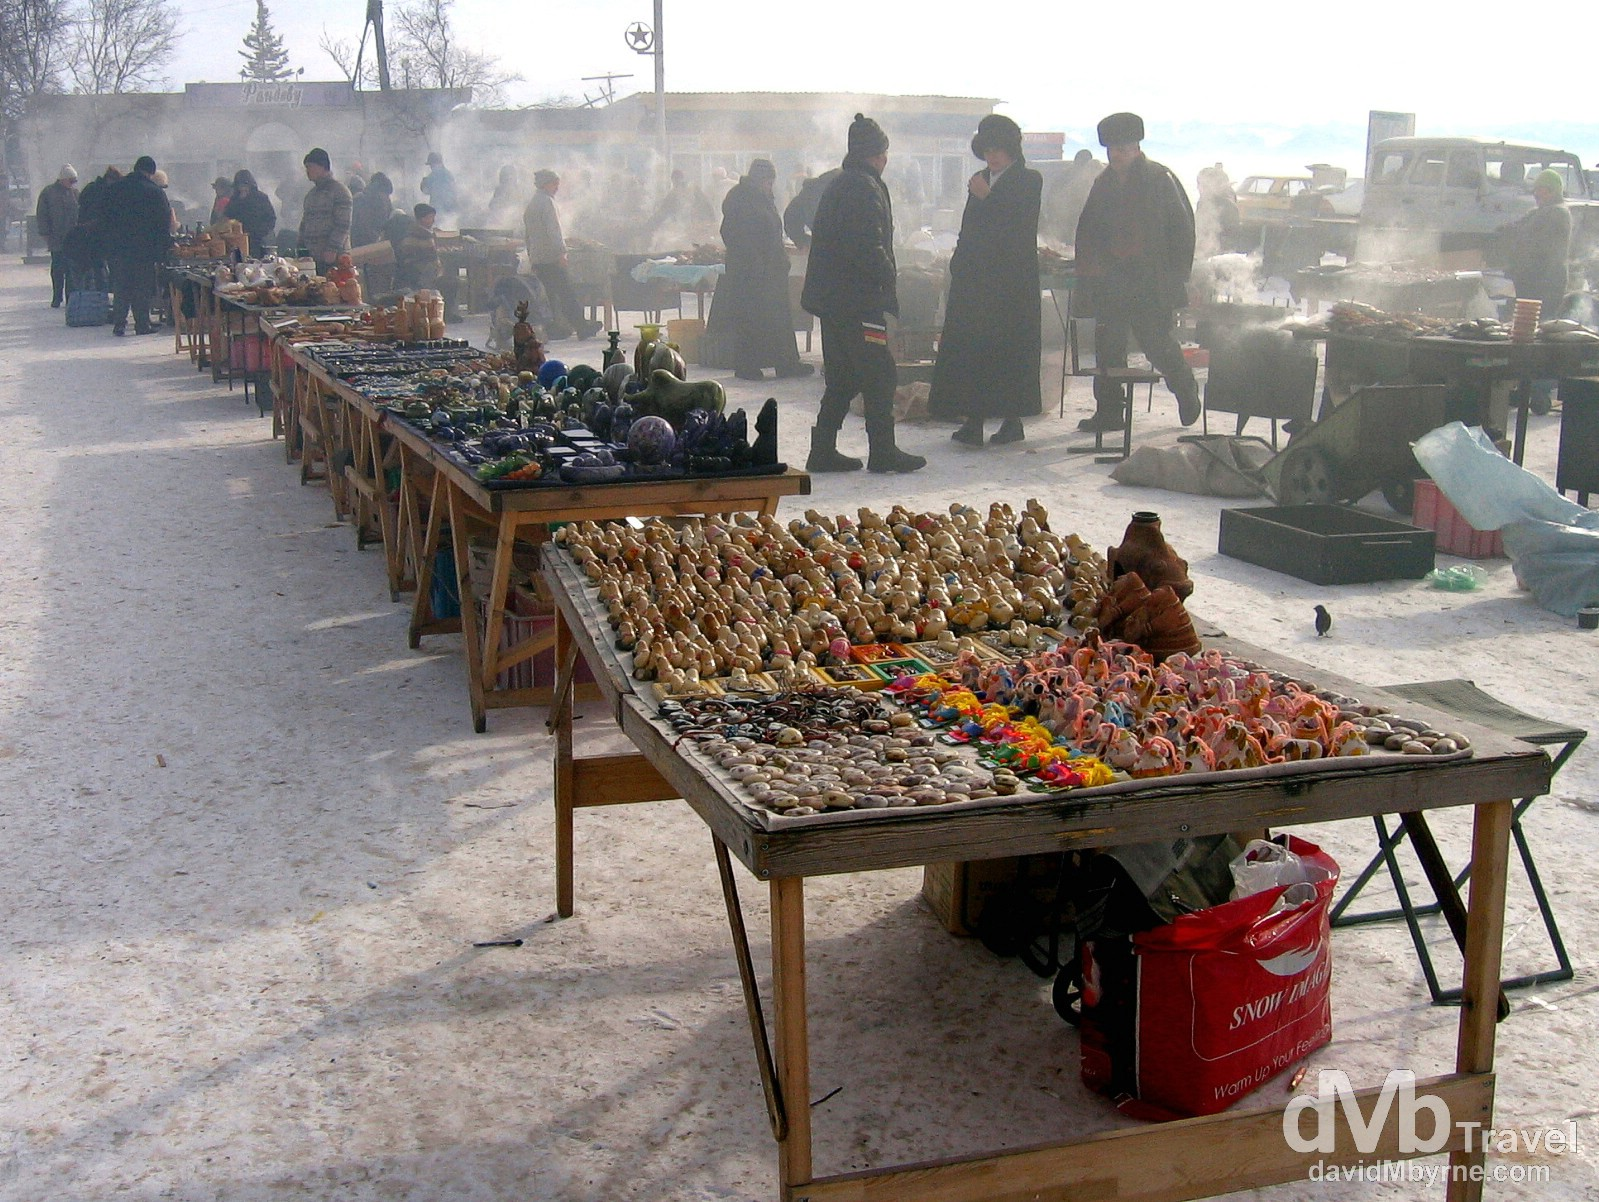 Market day in the village of Listvyanka on the shores of Lake Baikal in Siberian Russia. February 18, 2006.